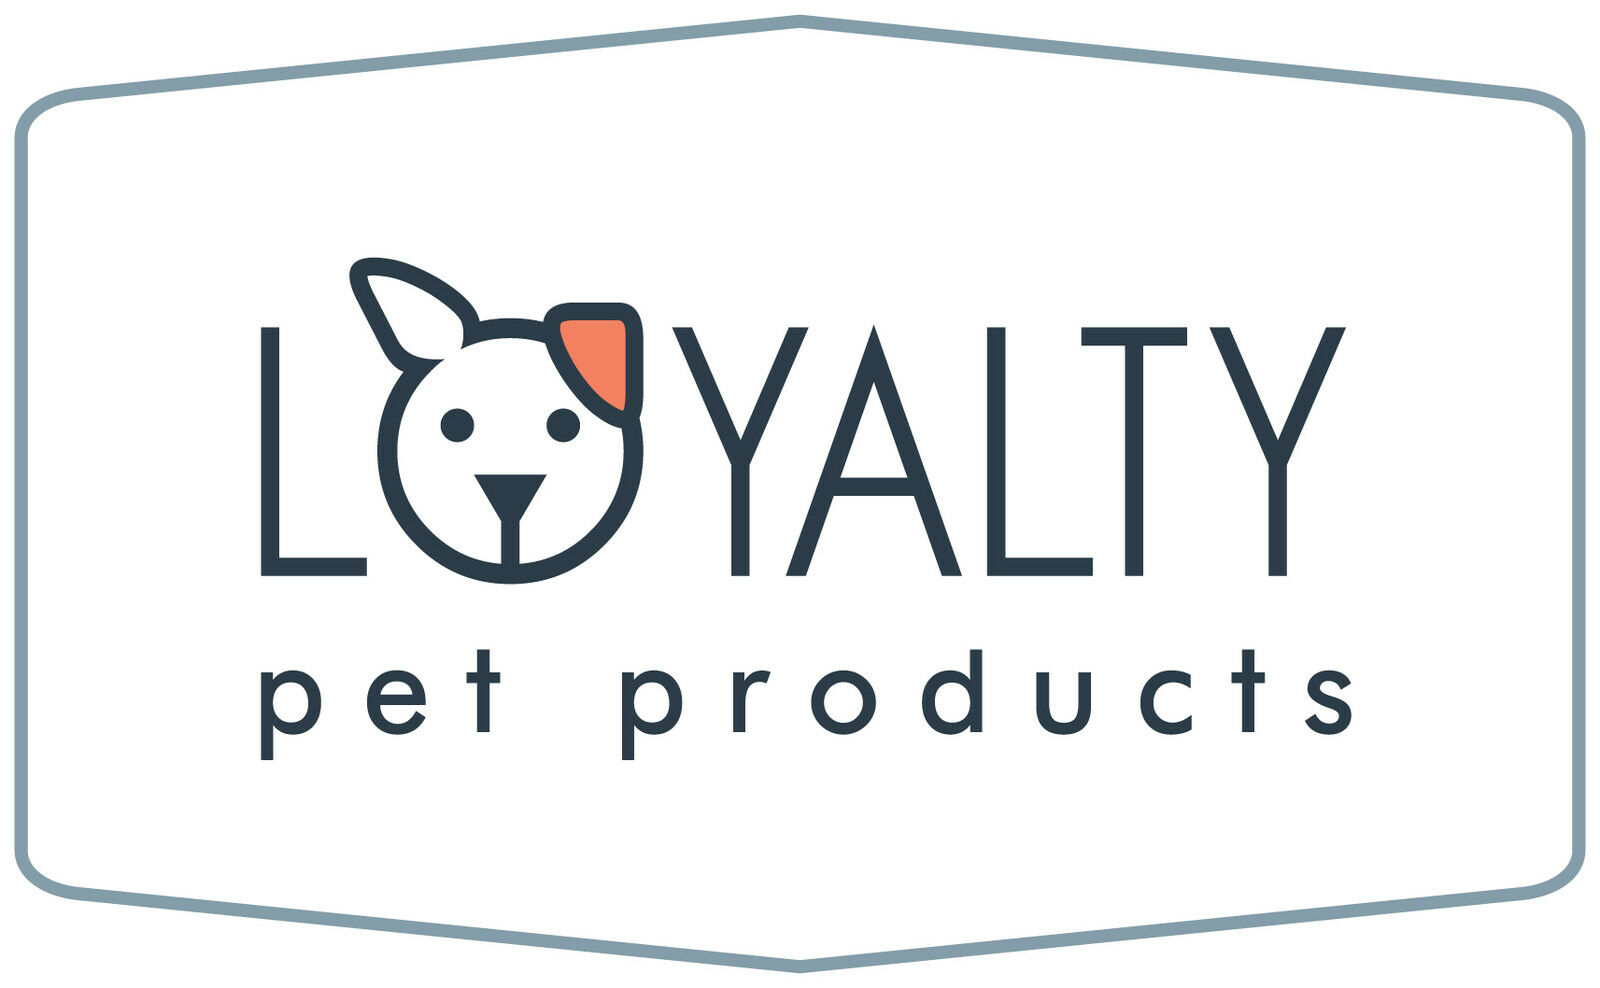 LoyaltyPetProducts.com